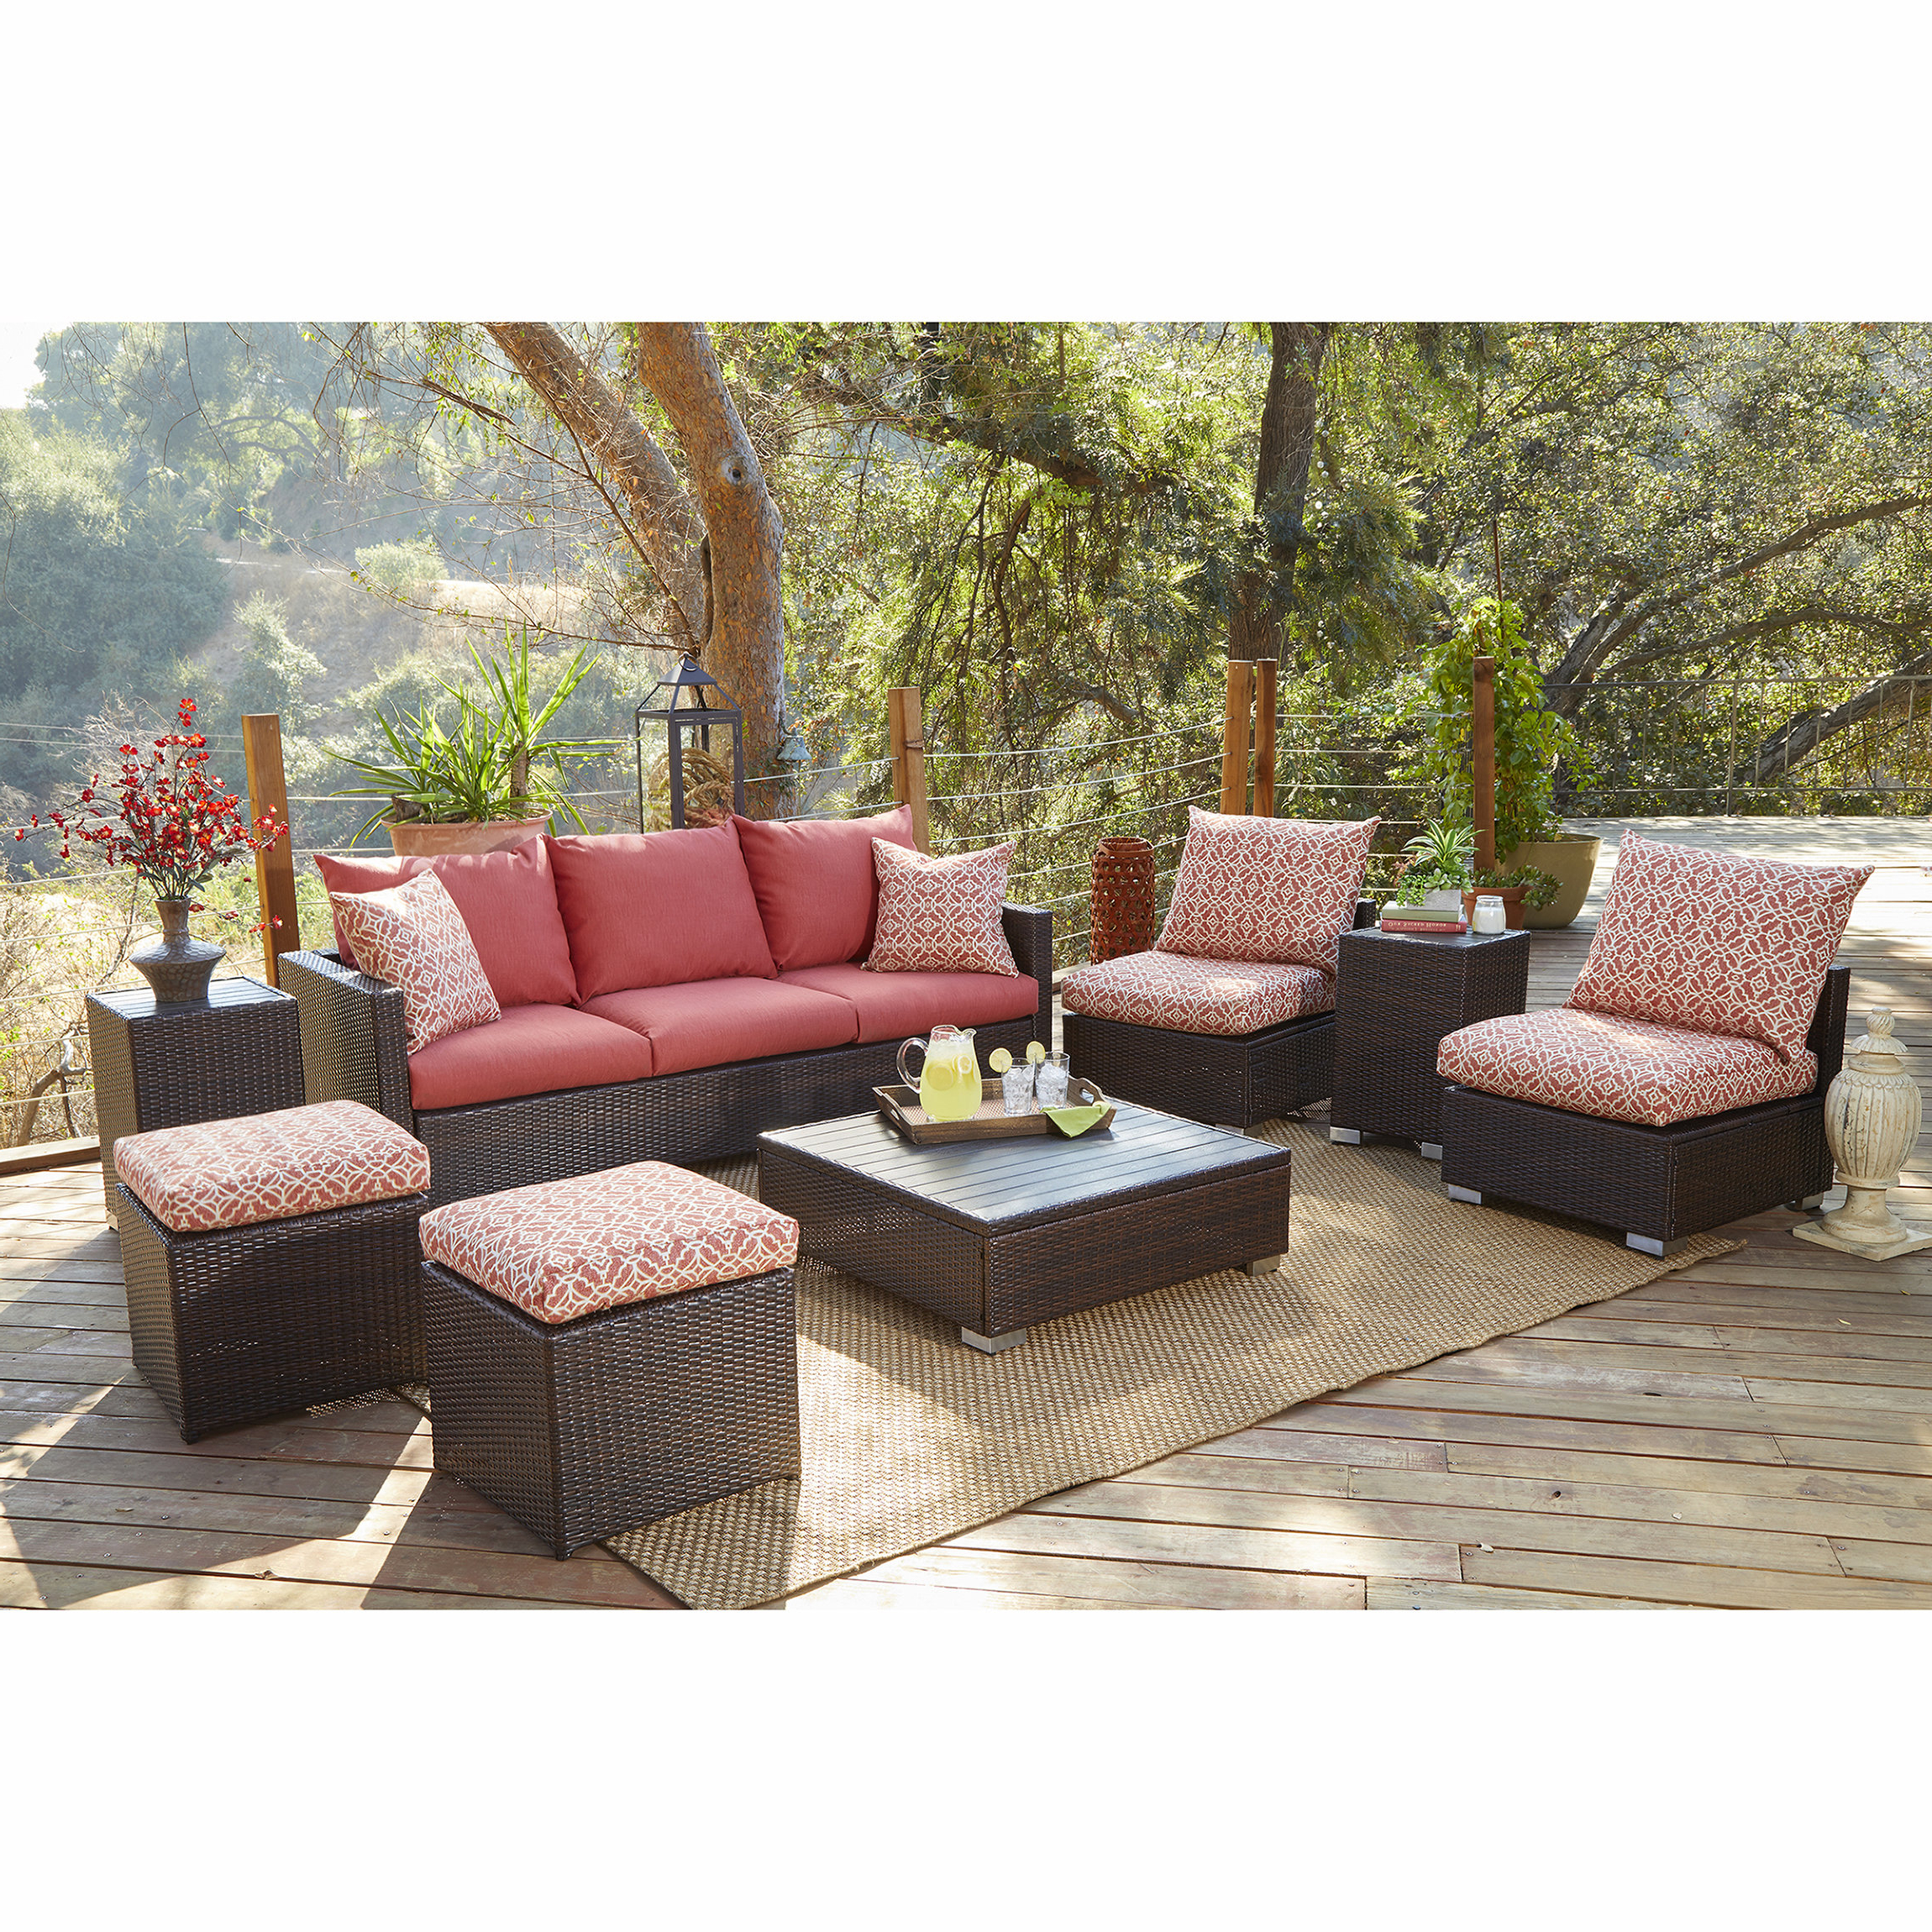 Mcmanis Patio Sofas With Cushion With Most Popular Mcmanis 8 Piece Sofa Seating With Cushions (View 8 of 20)